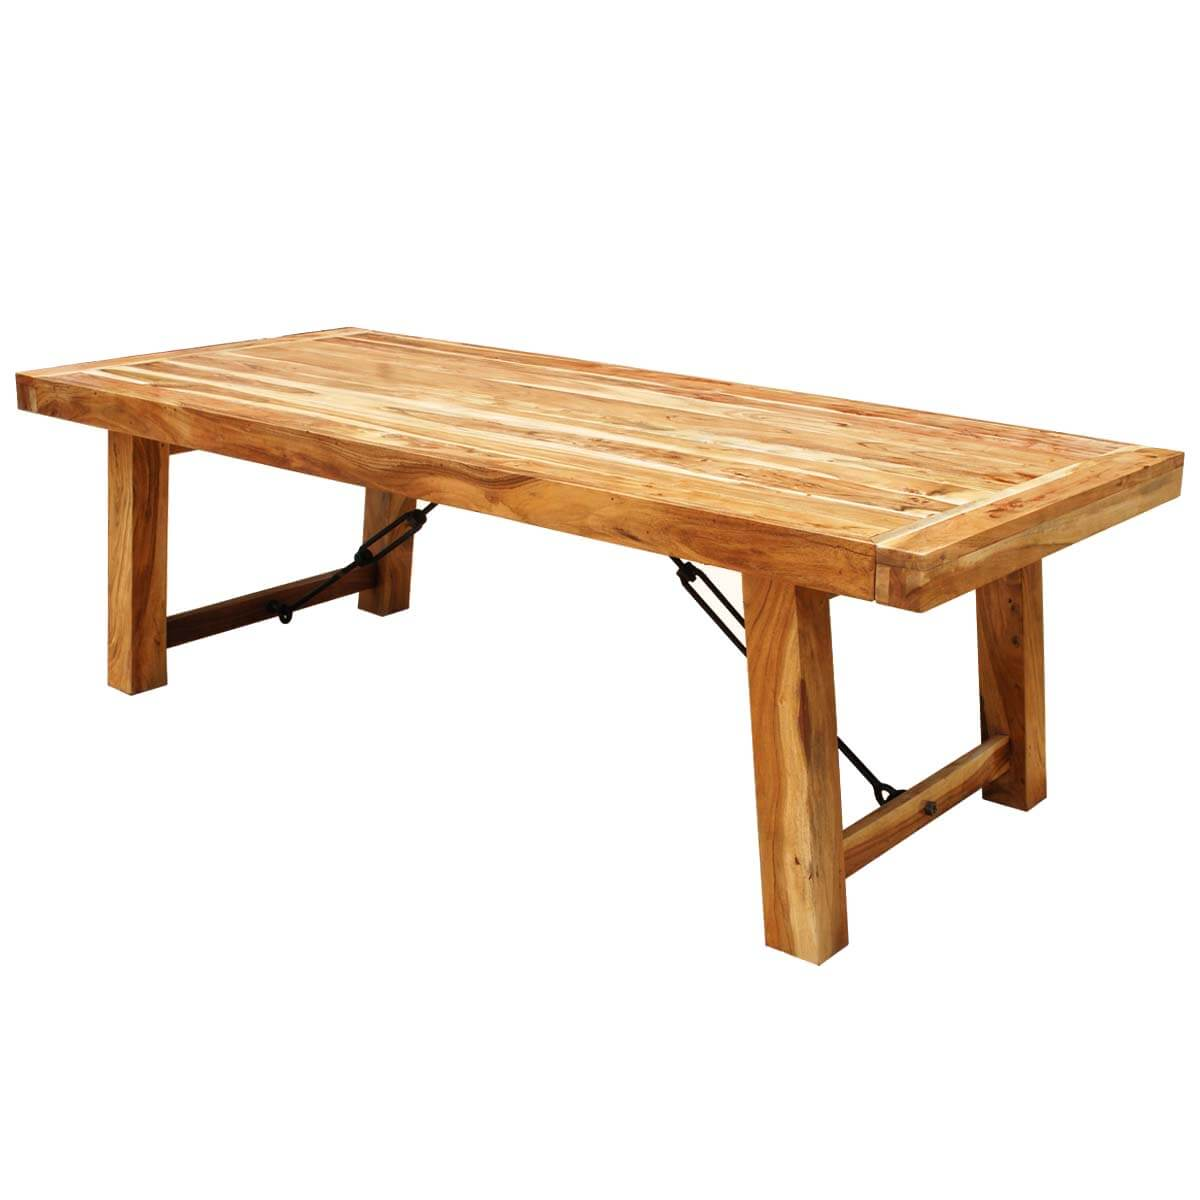 Room Dining Room Dining Tables Rustic Wood Large Santa Fe Dining Room